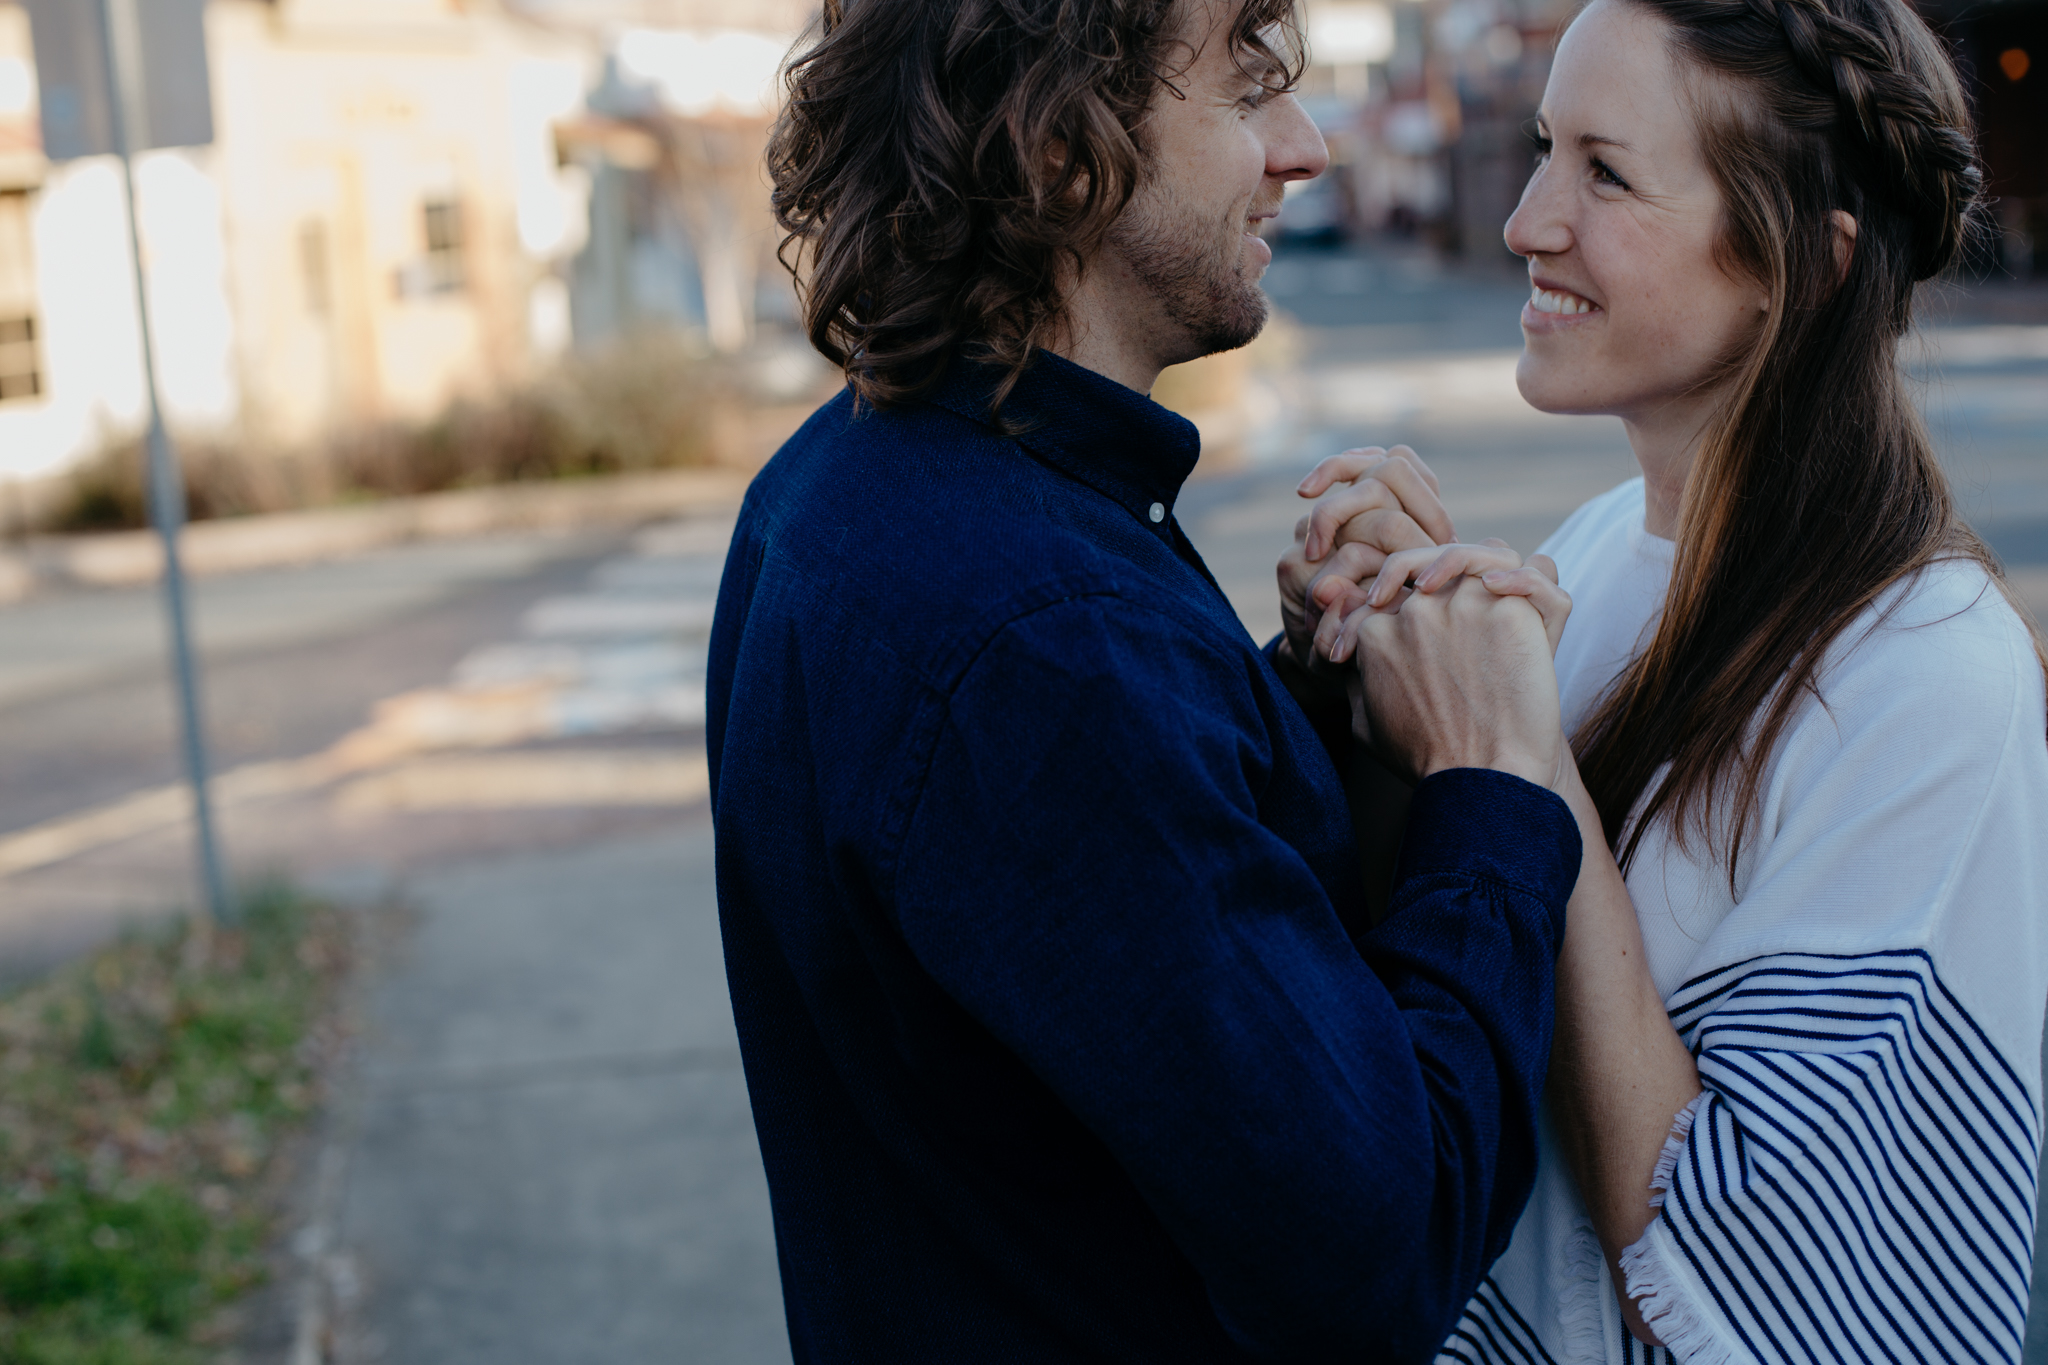 181116_Megan-Andrew-Engagement_059.jpg